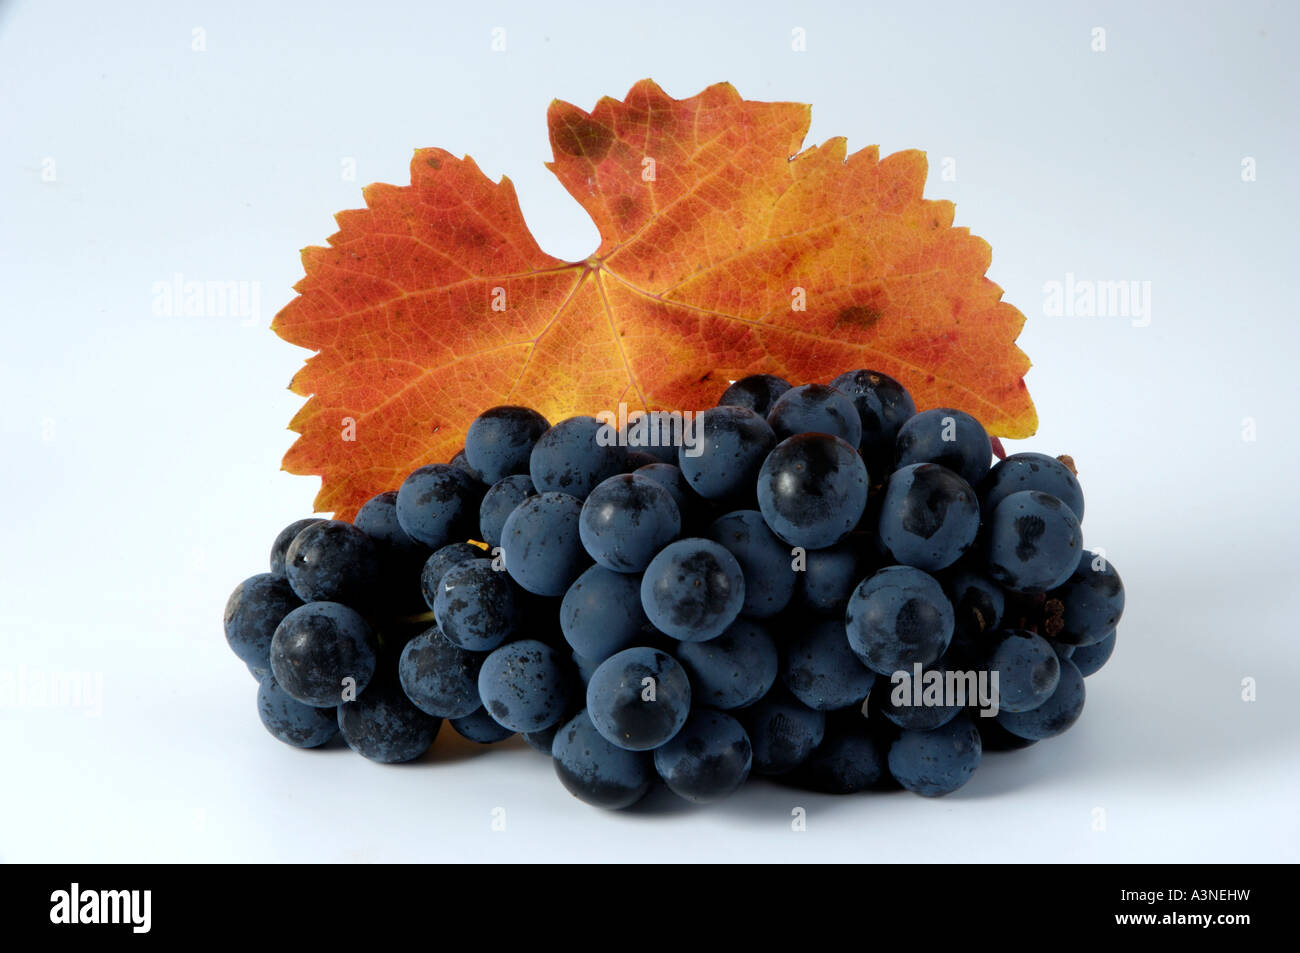 Grapes 'Regent'  - Stock Image